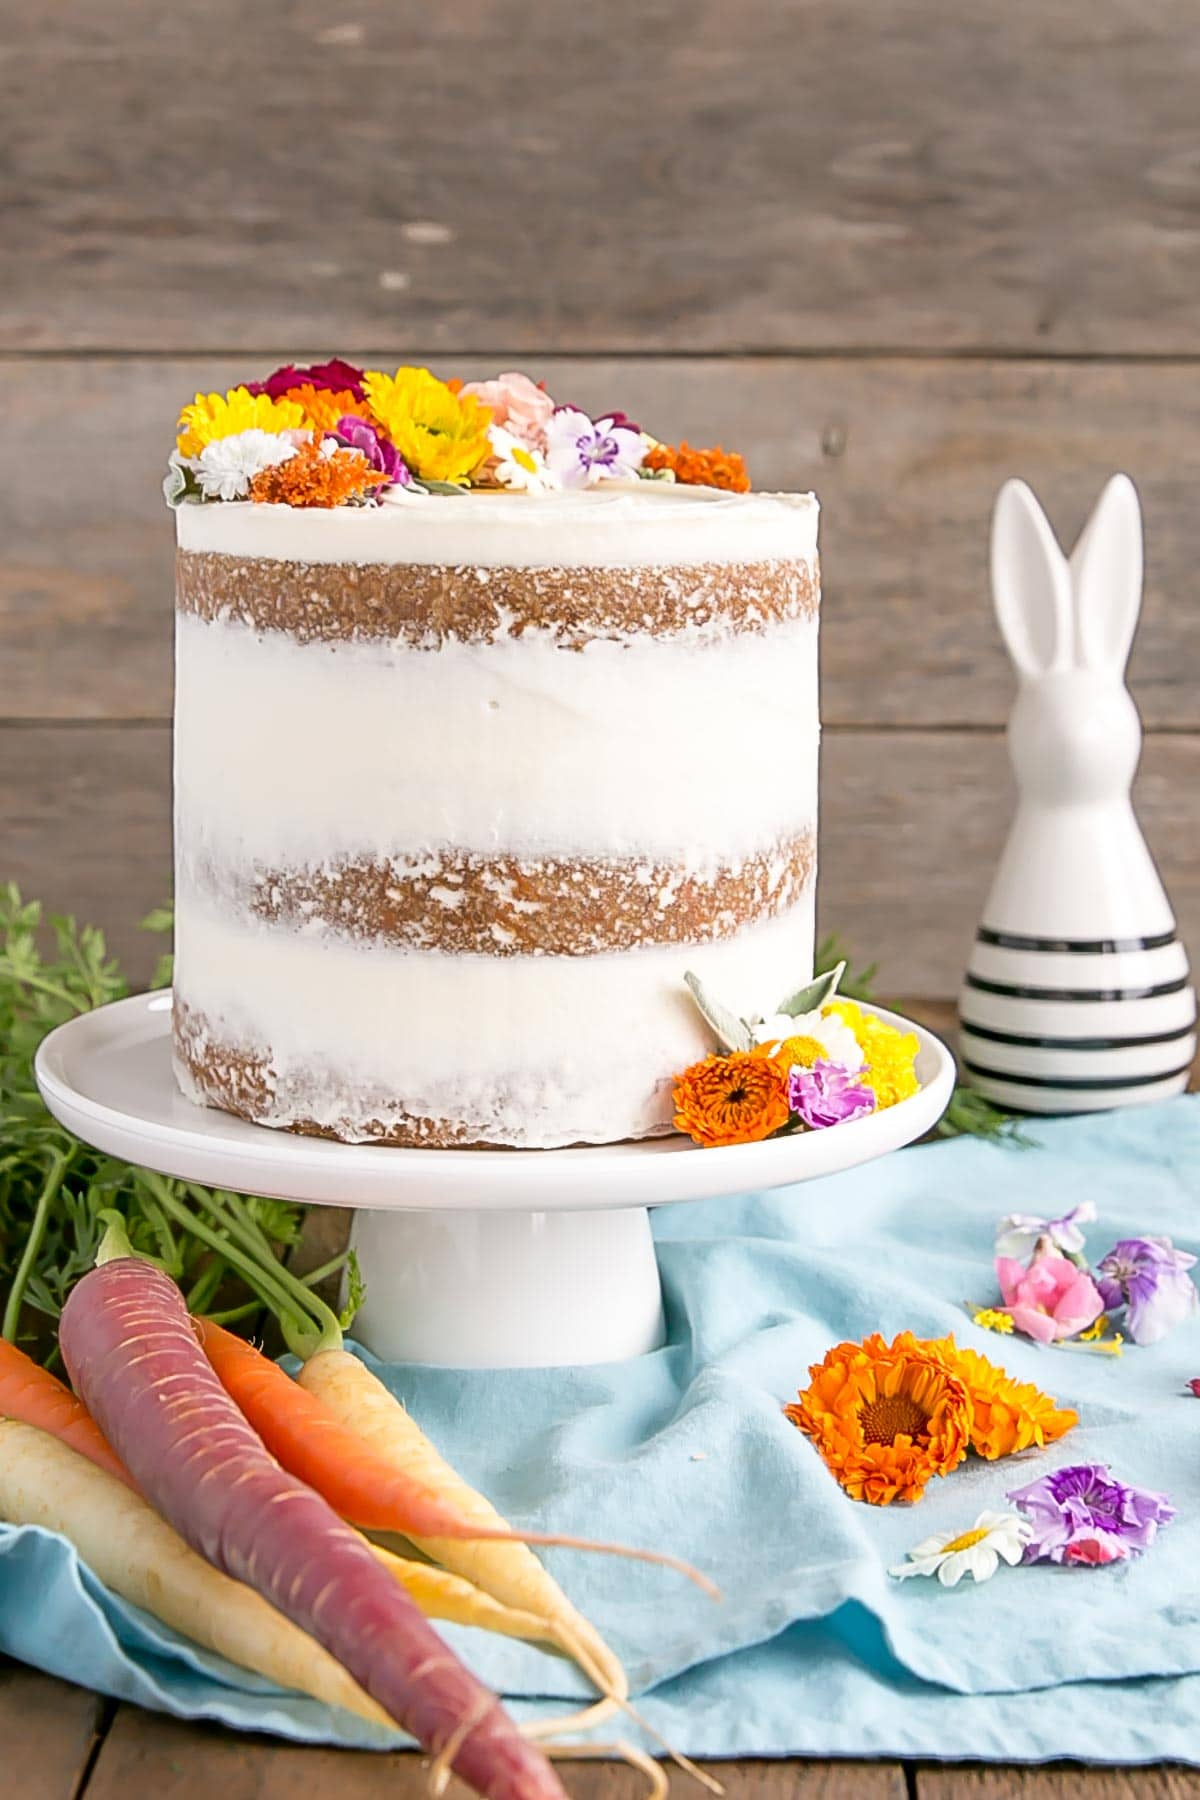 Carrot Cake recipe with cream cheese frosting and edible flowers